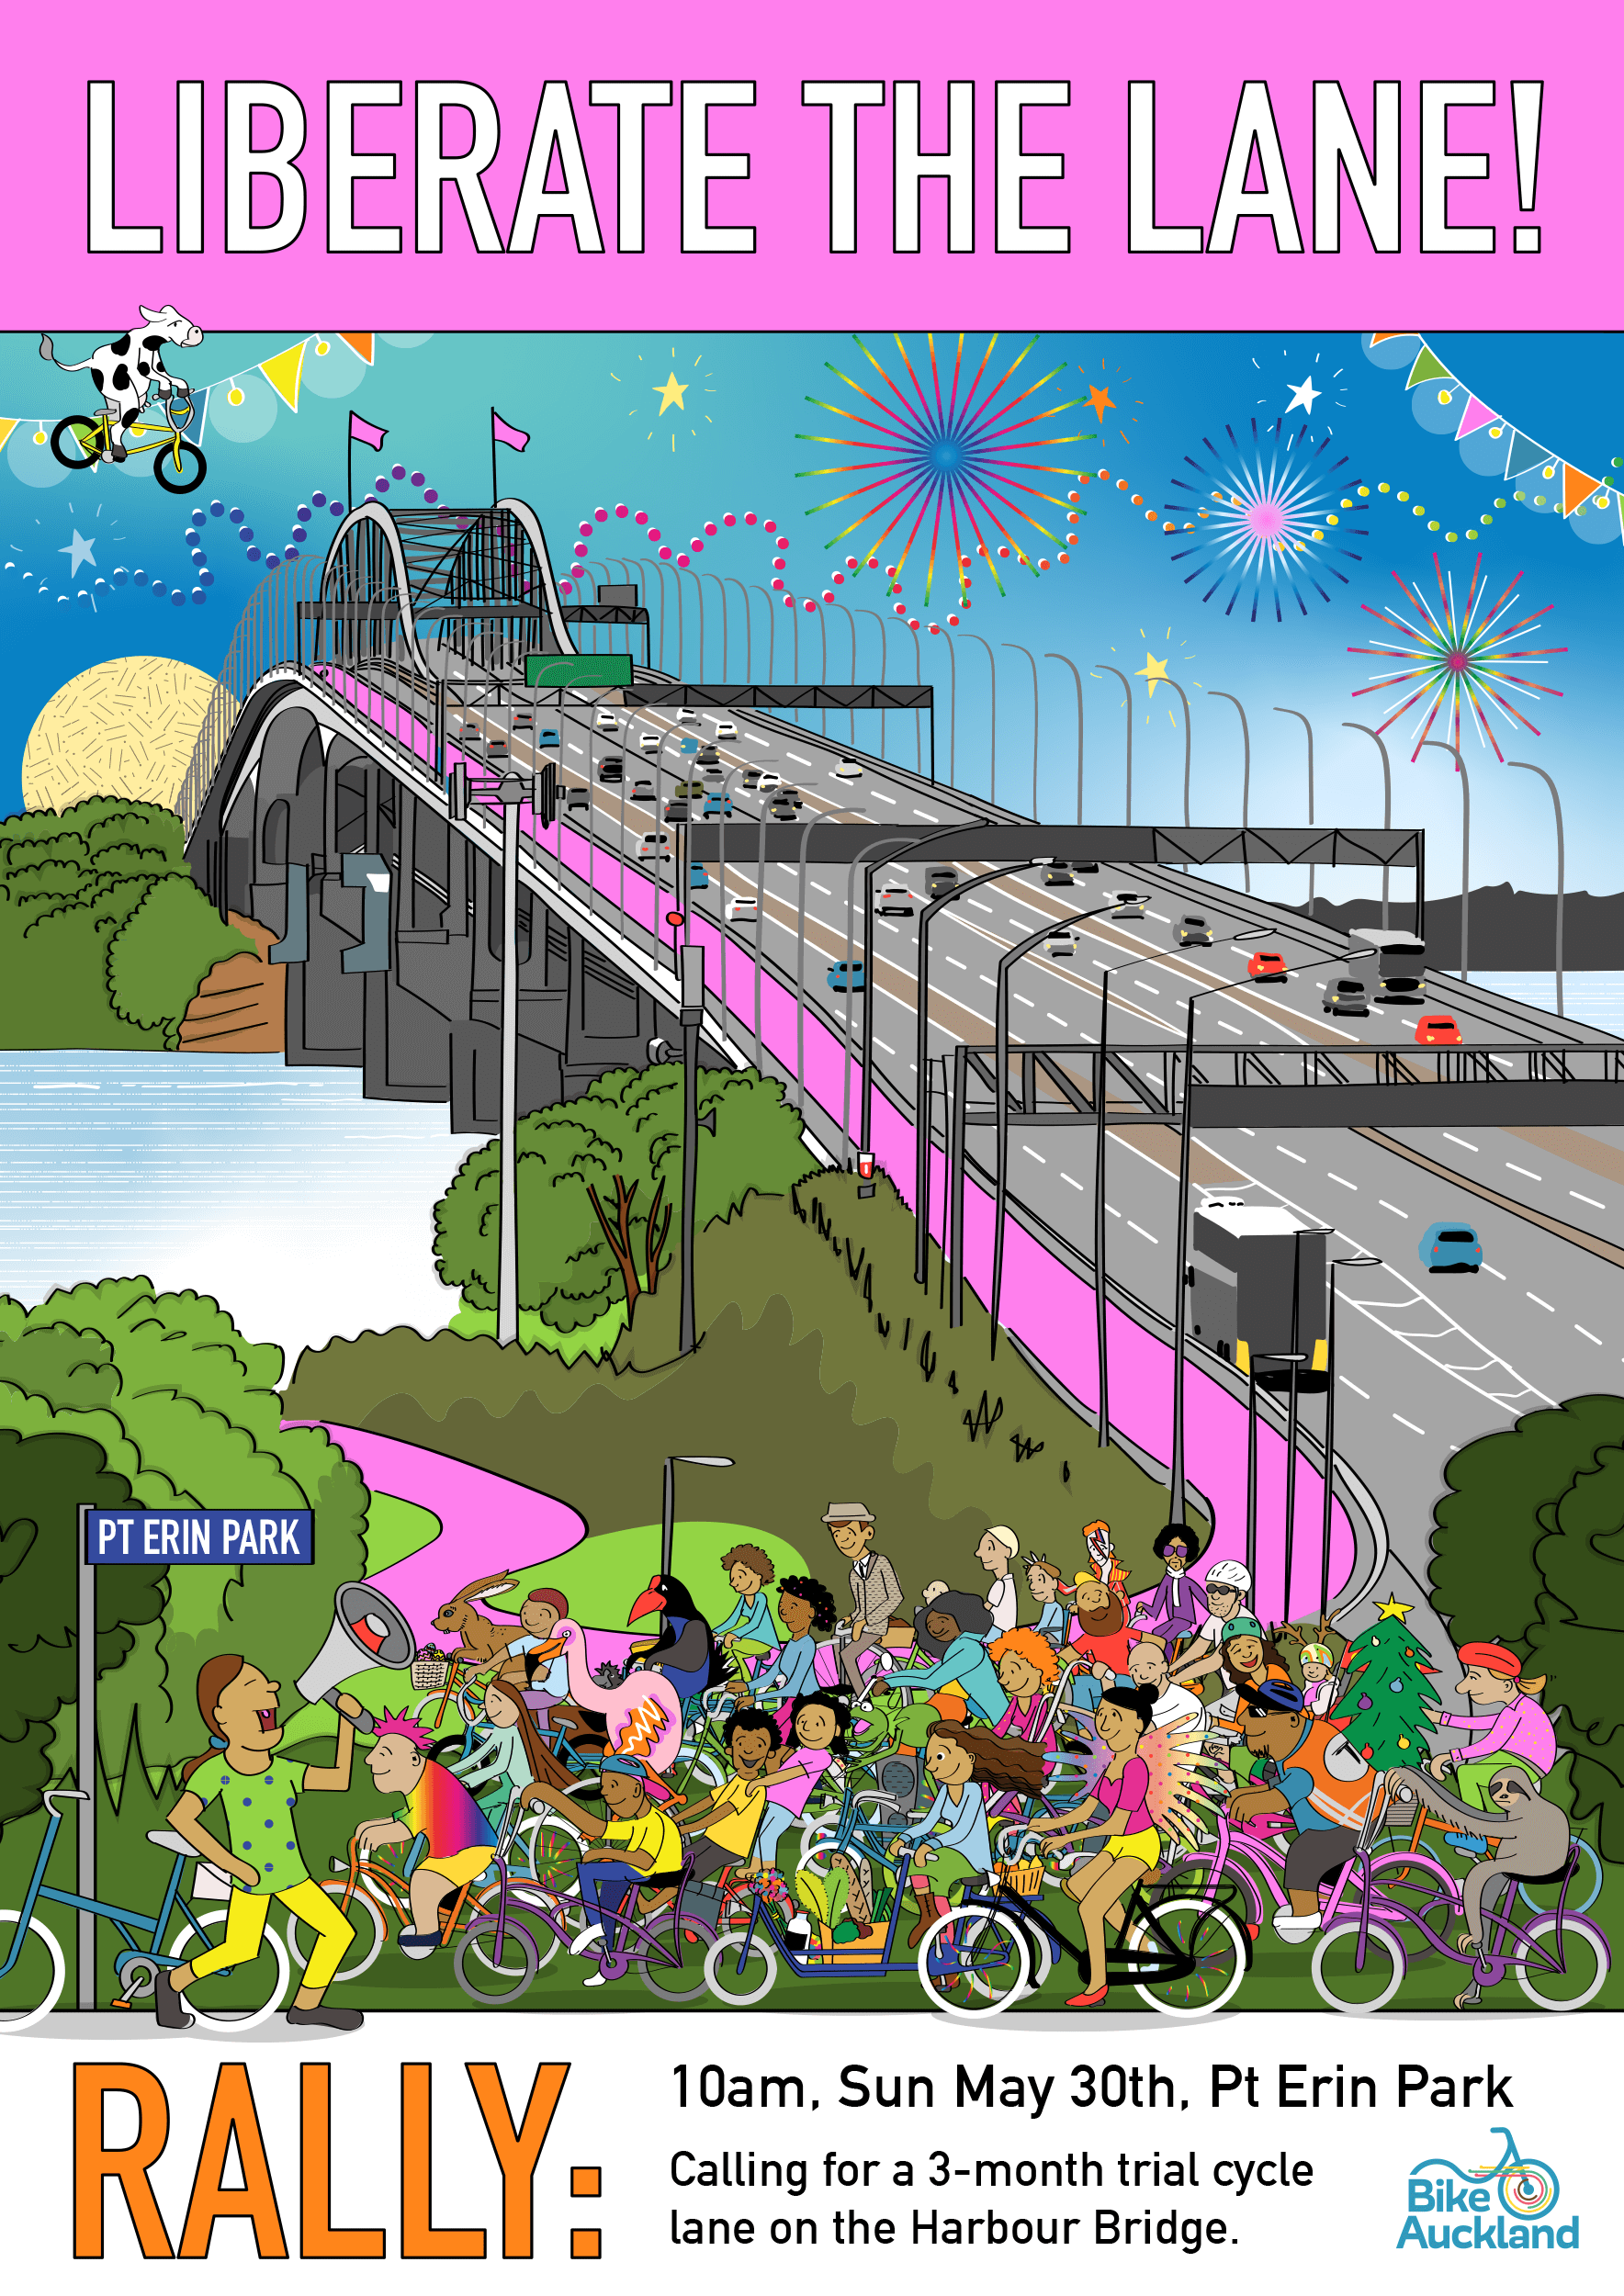 Liberate the Lane! Rally calling for a 3-month trial cycle lane on Auckland Harbour Bridge. 10am, Sunday 30th May, Pt Erin Park